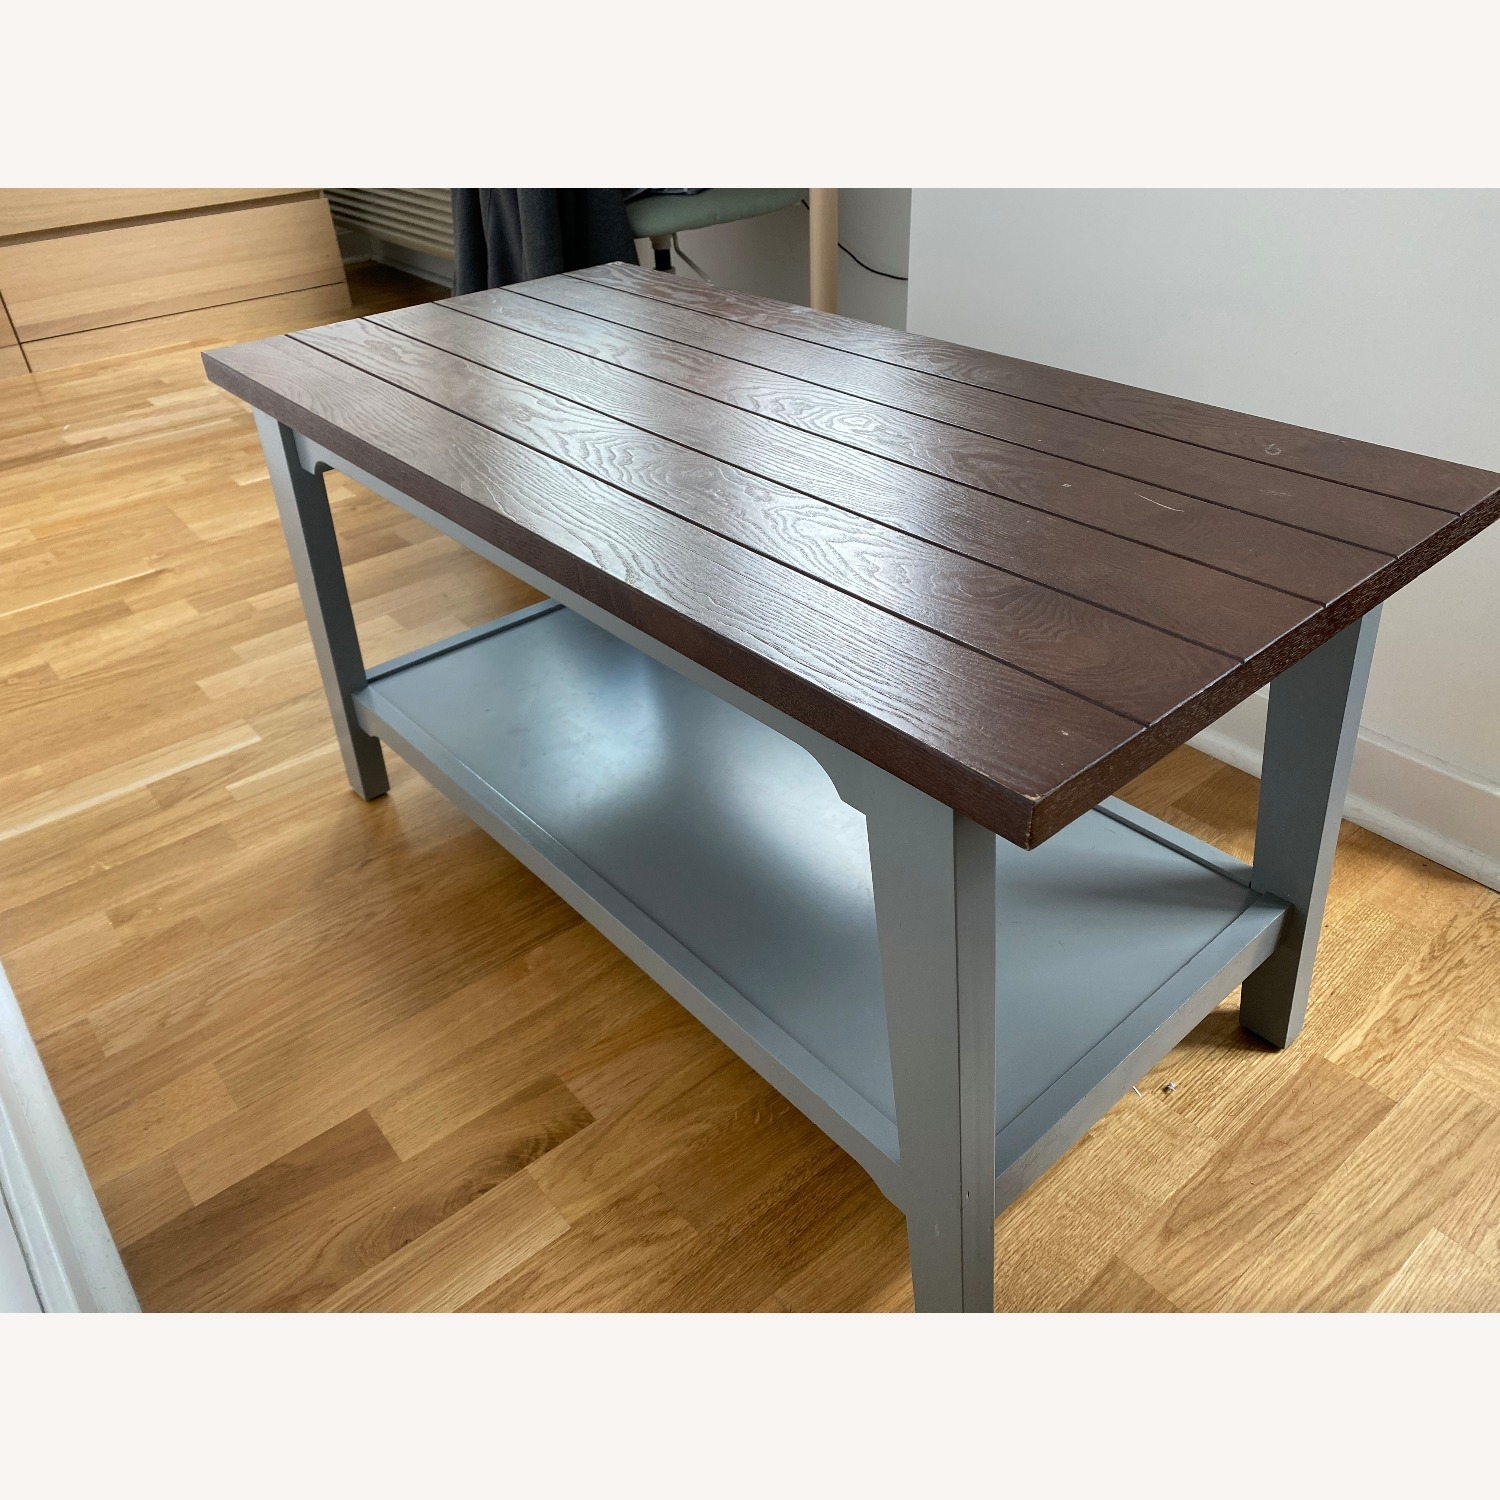 Chatham House Newport Coffee Table in Grey - image-4